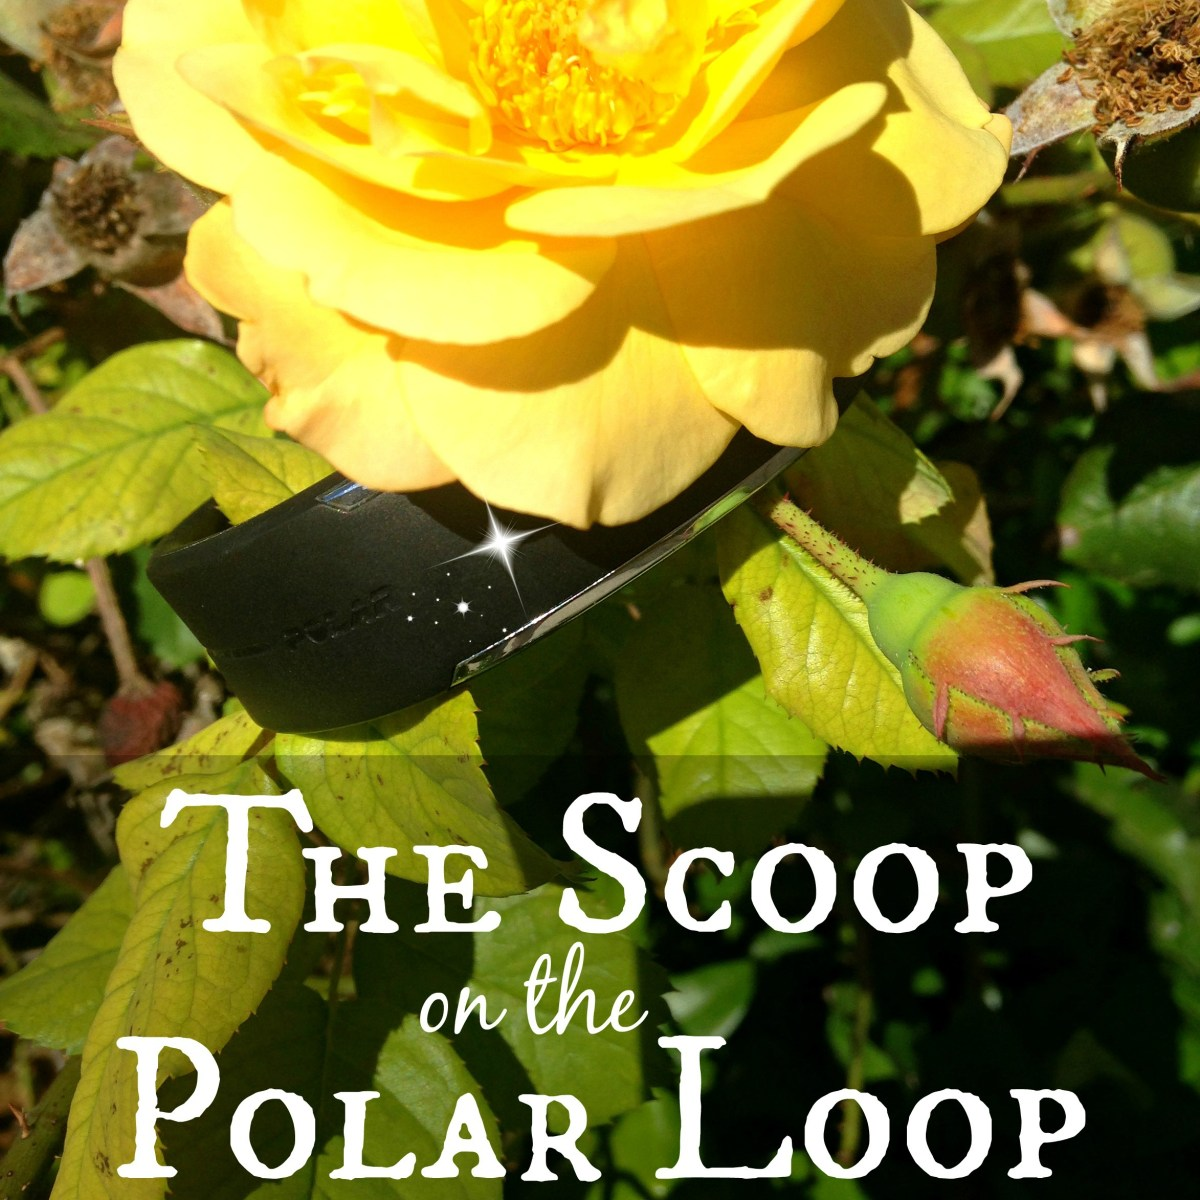 The Scoop on the Polar Loop